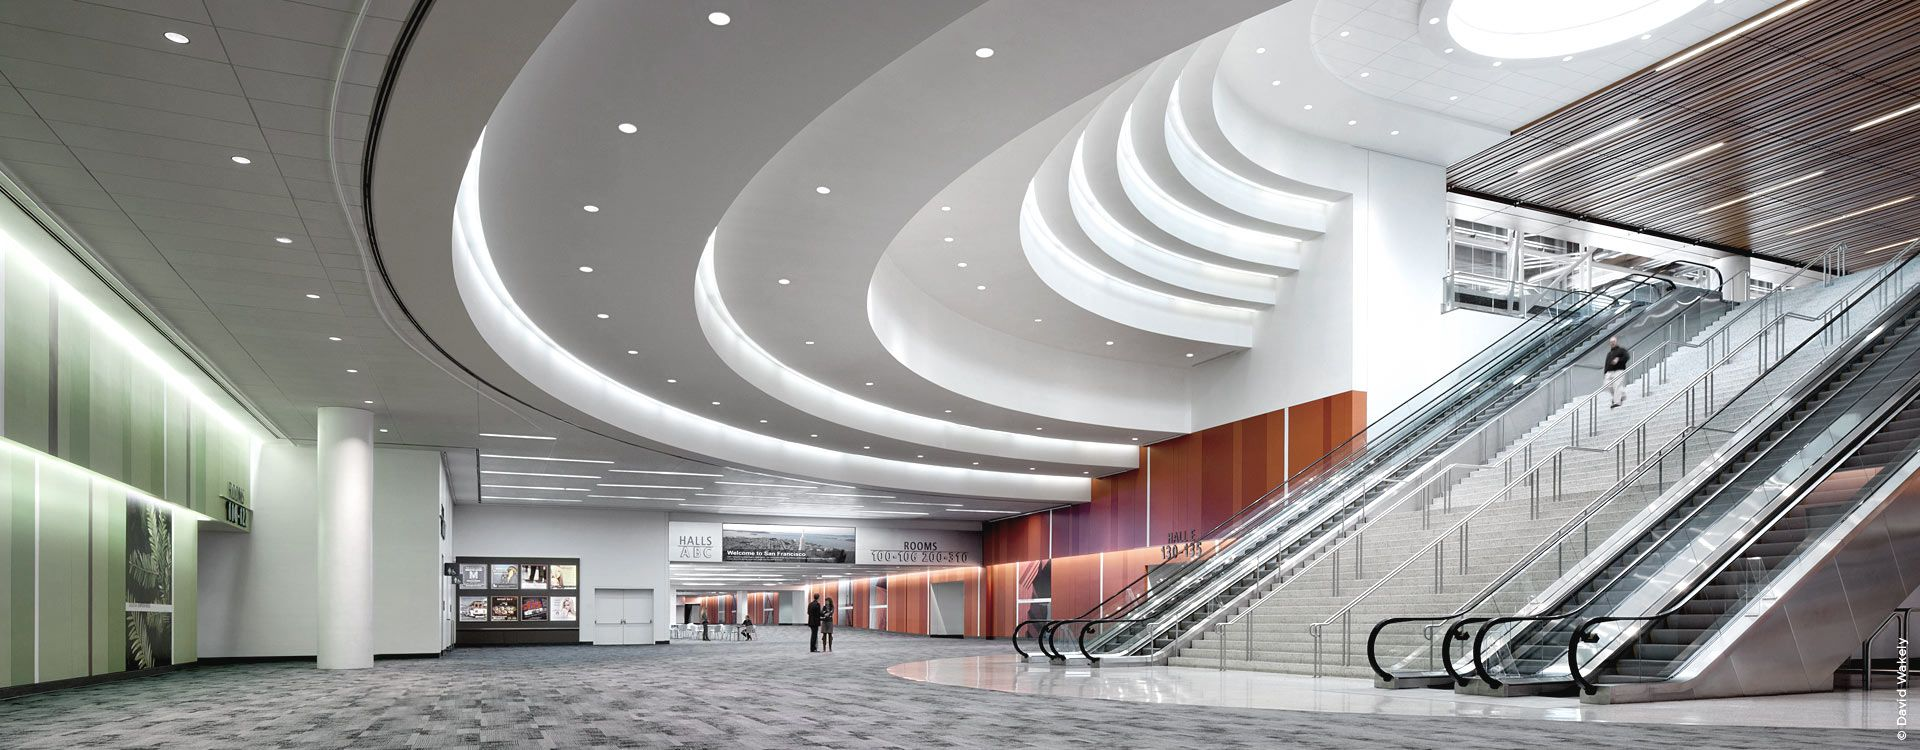 Engineering Moscone Convention Center- interior view